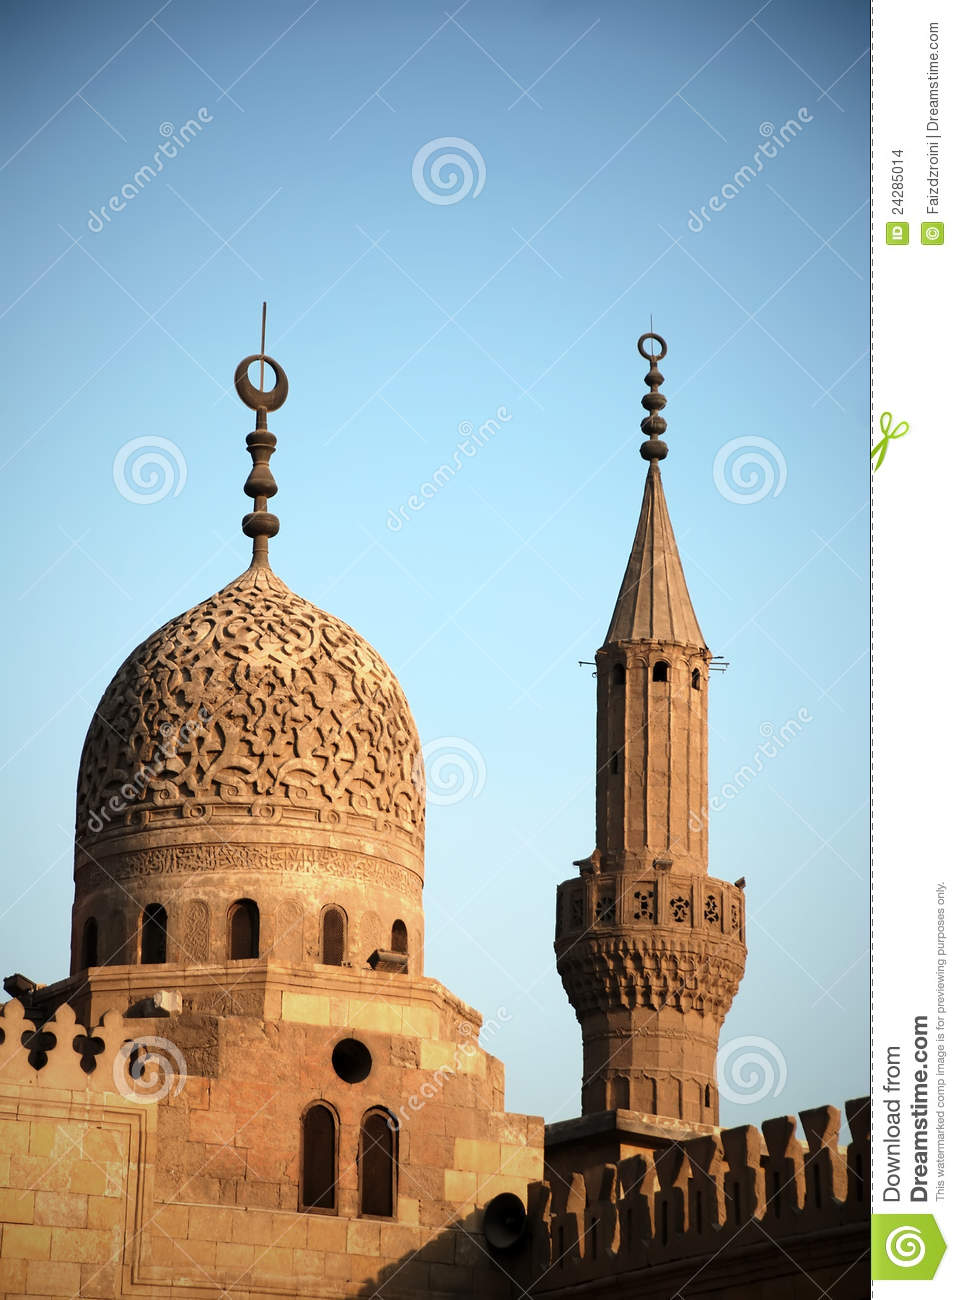 Spiral Wallpaper 3d The Dome And Minaret Of Al Azhar Mosque In Cairo Stock